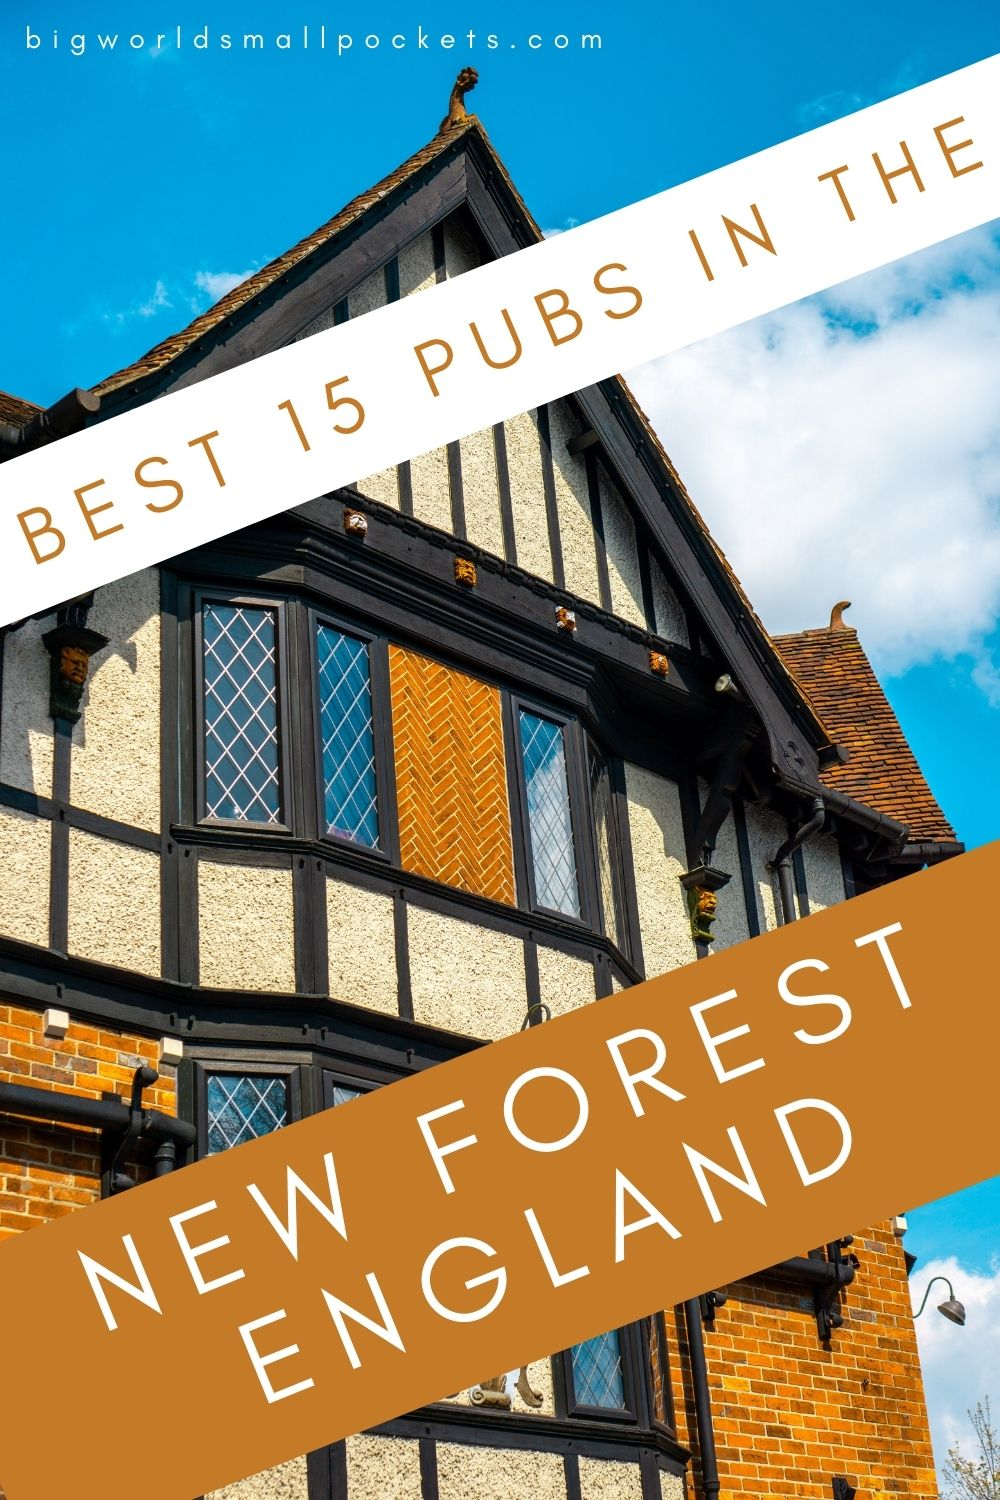 The 15 Best Pubs in England's New Forest National Park